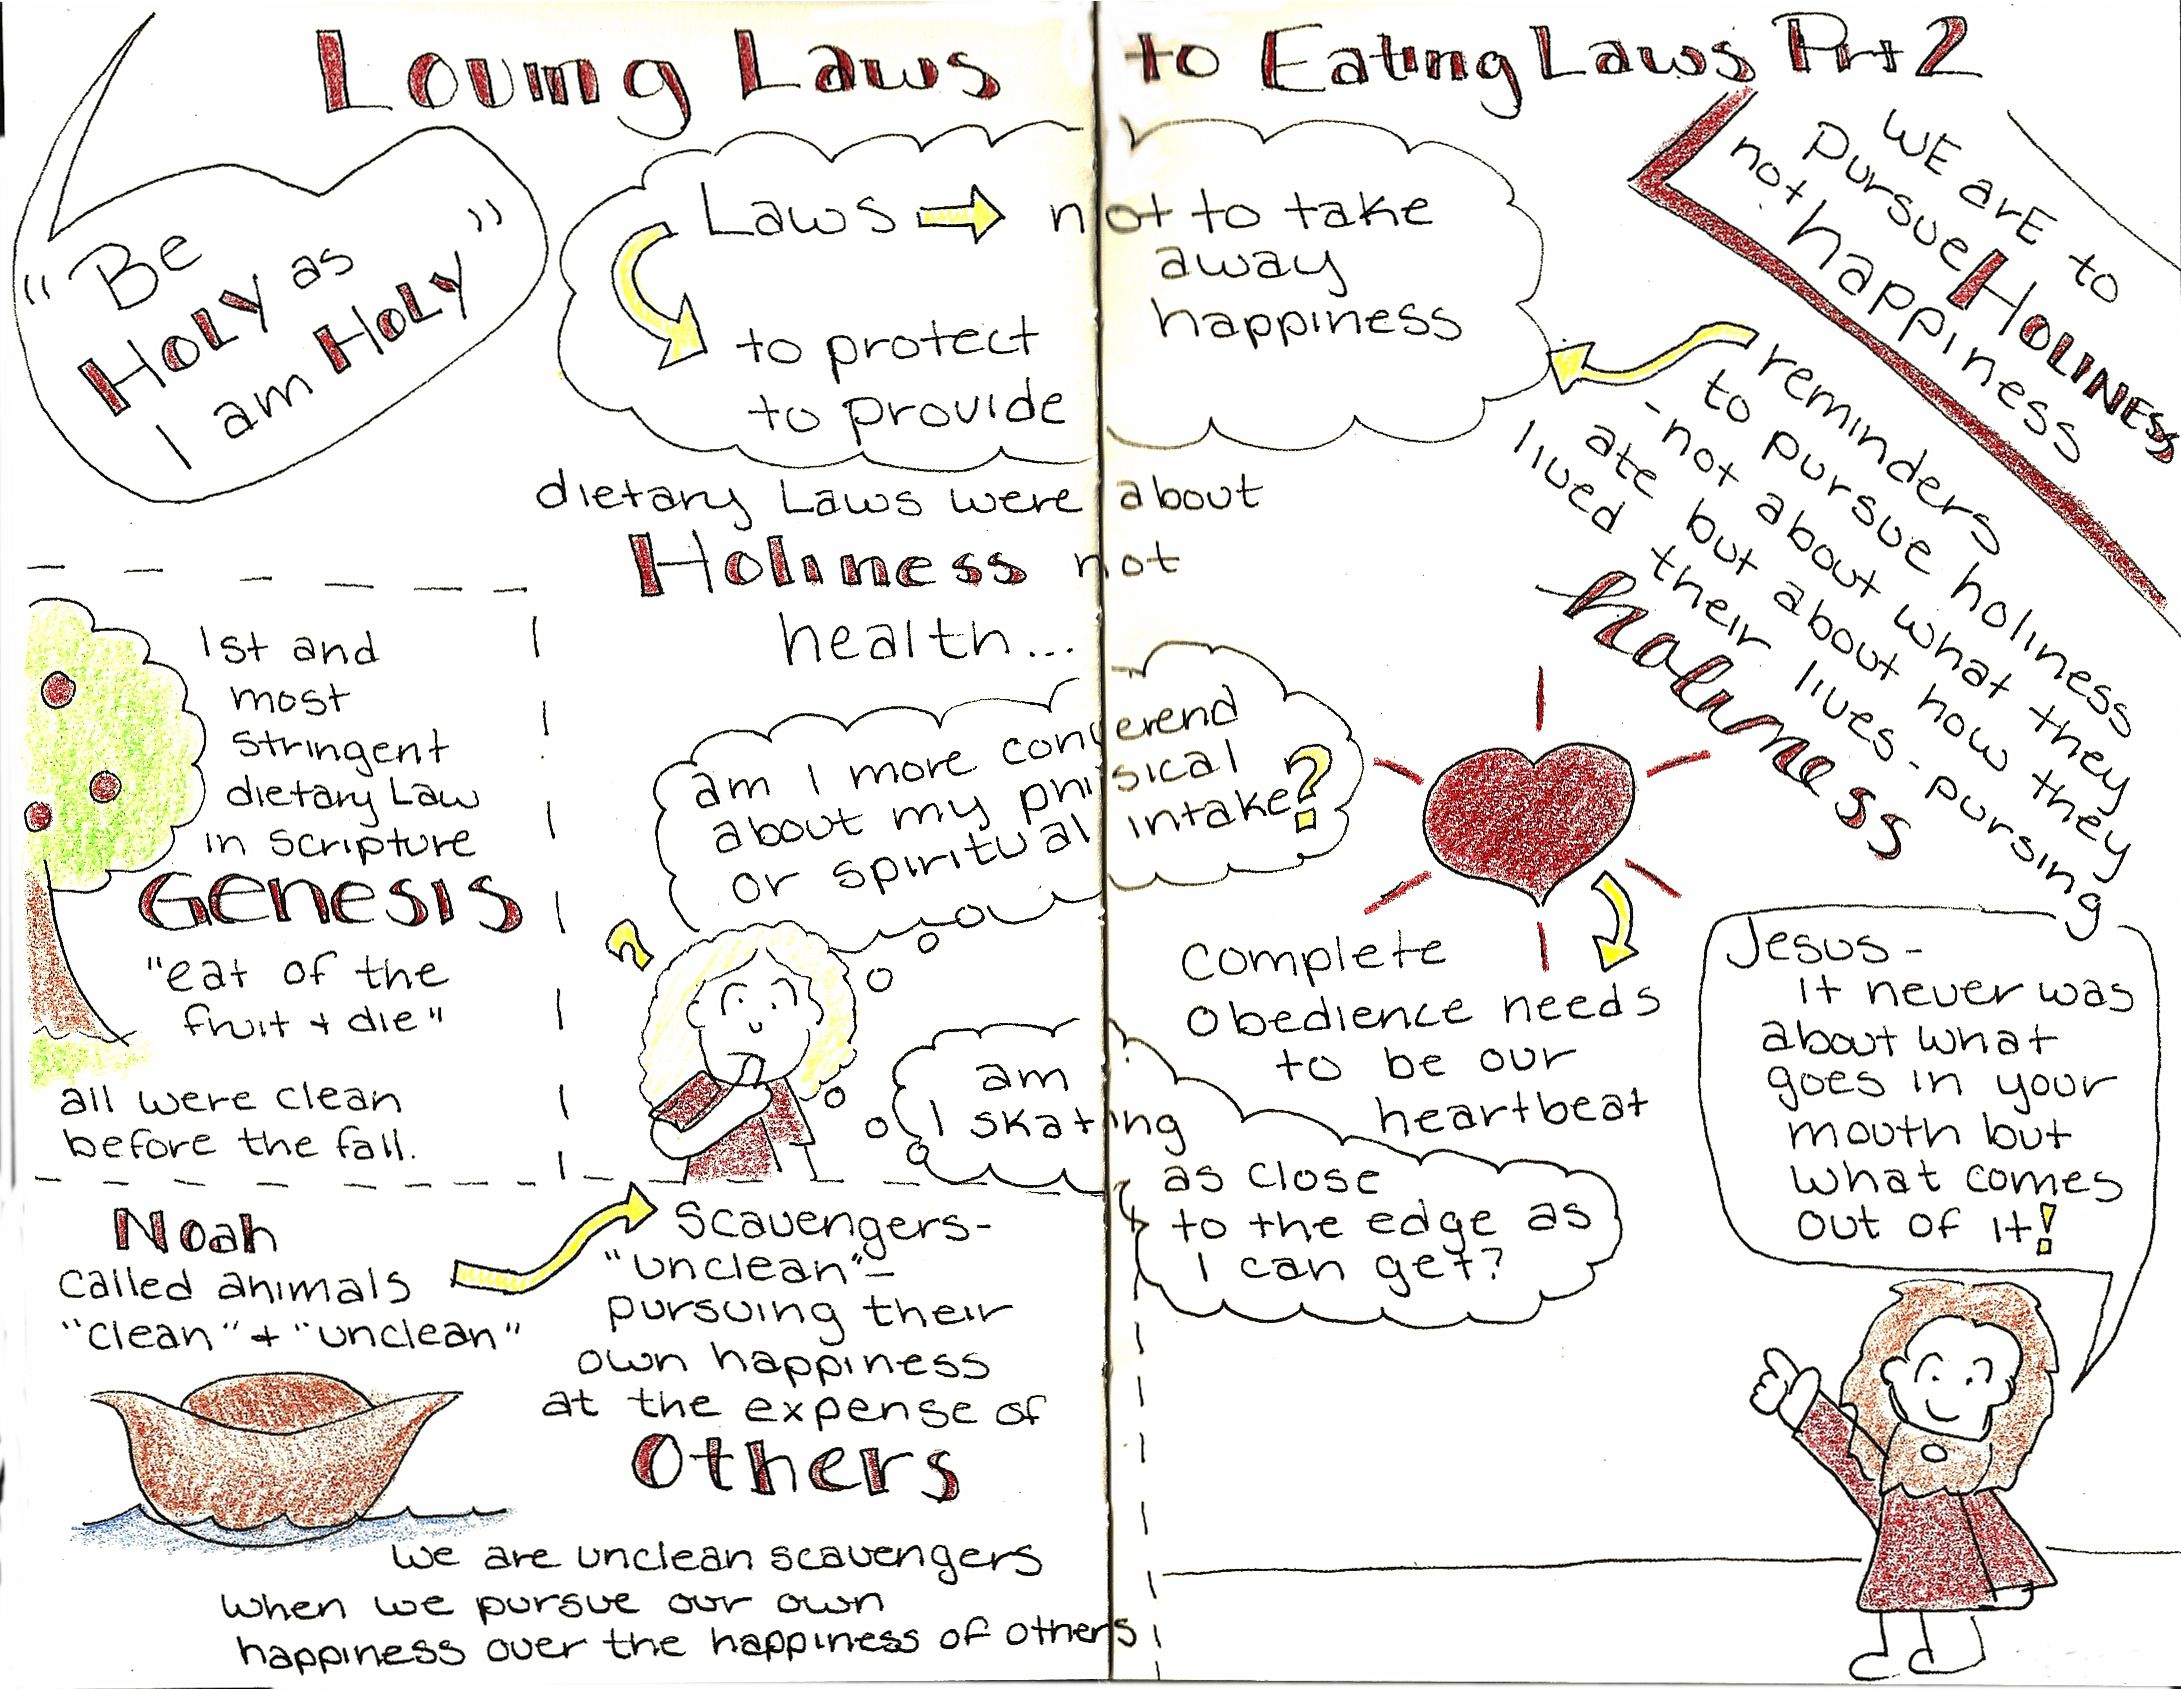 Sketchnotes Fromtary Laws Part 2 Sermon Podcast